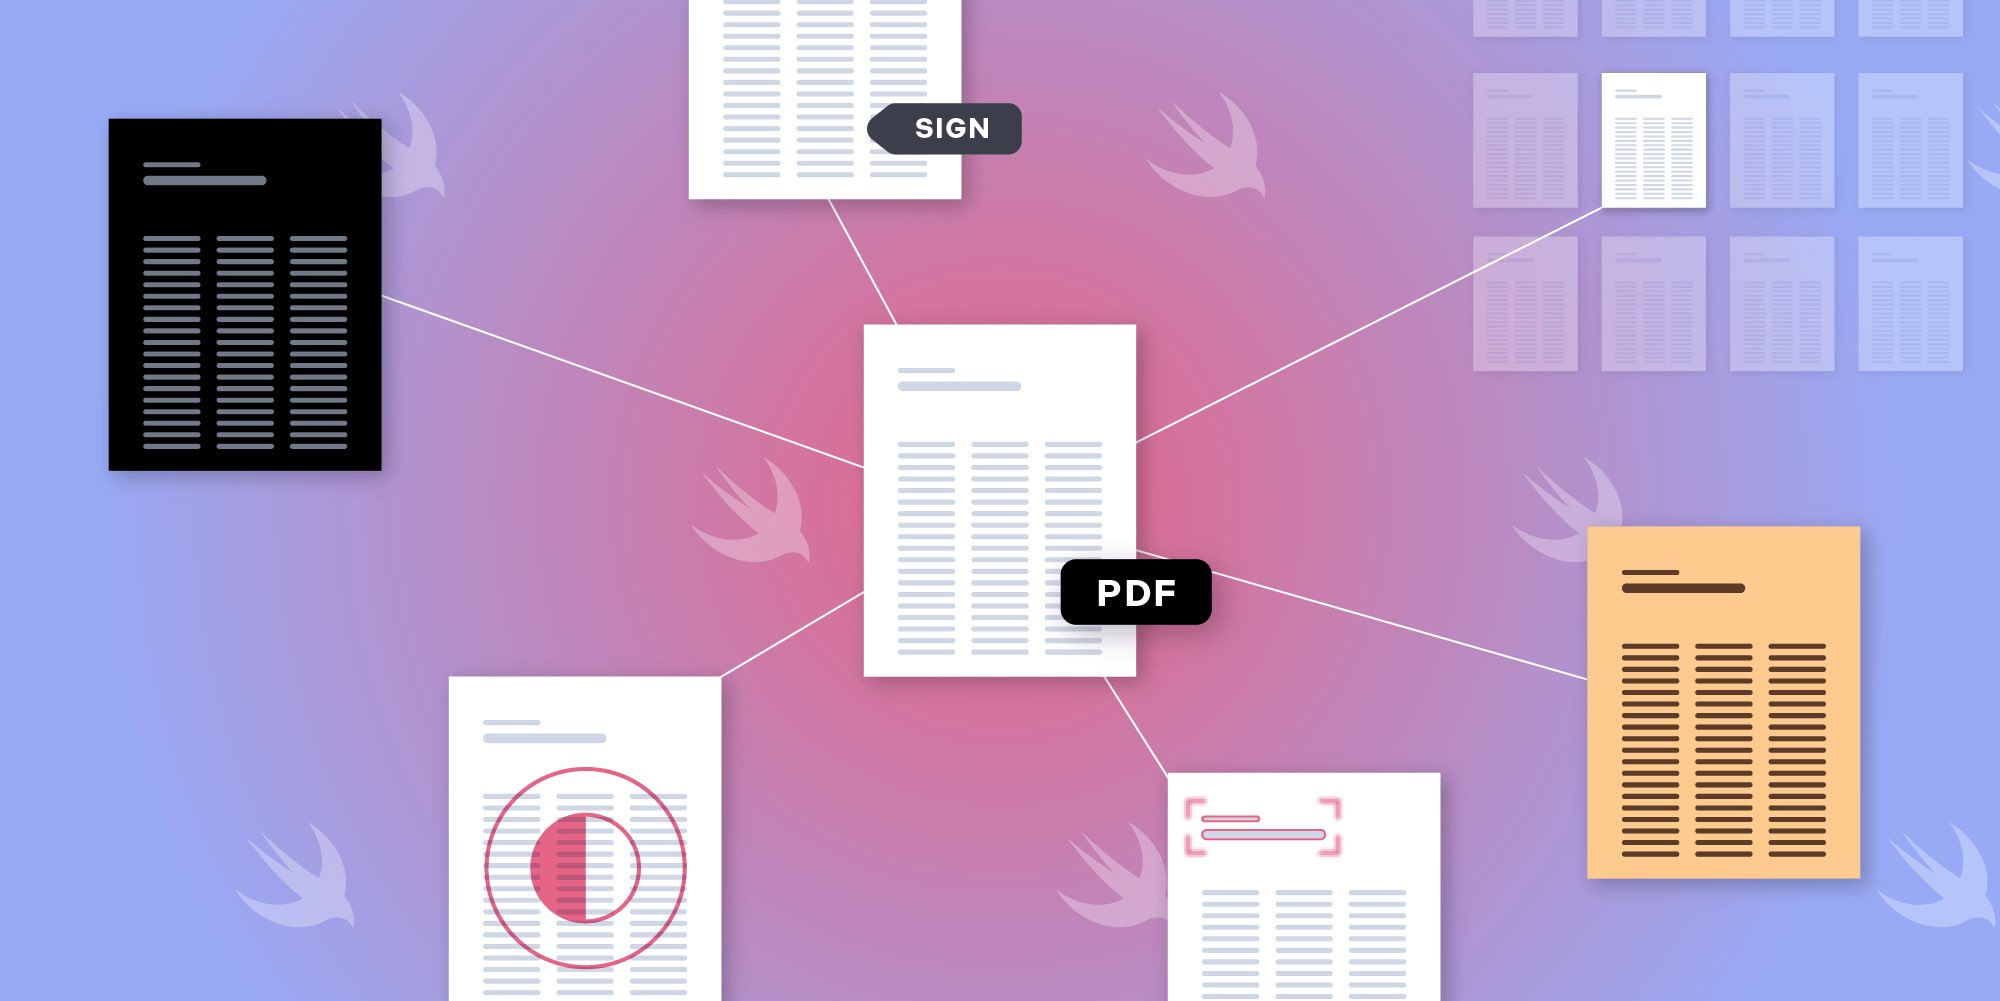 Illustration: Convert a PDF to an Image in Swift